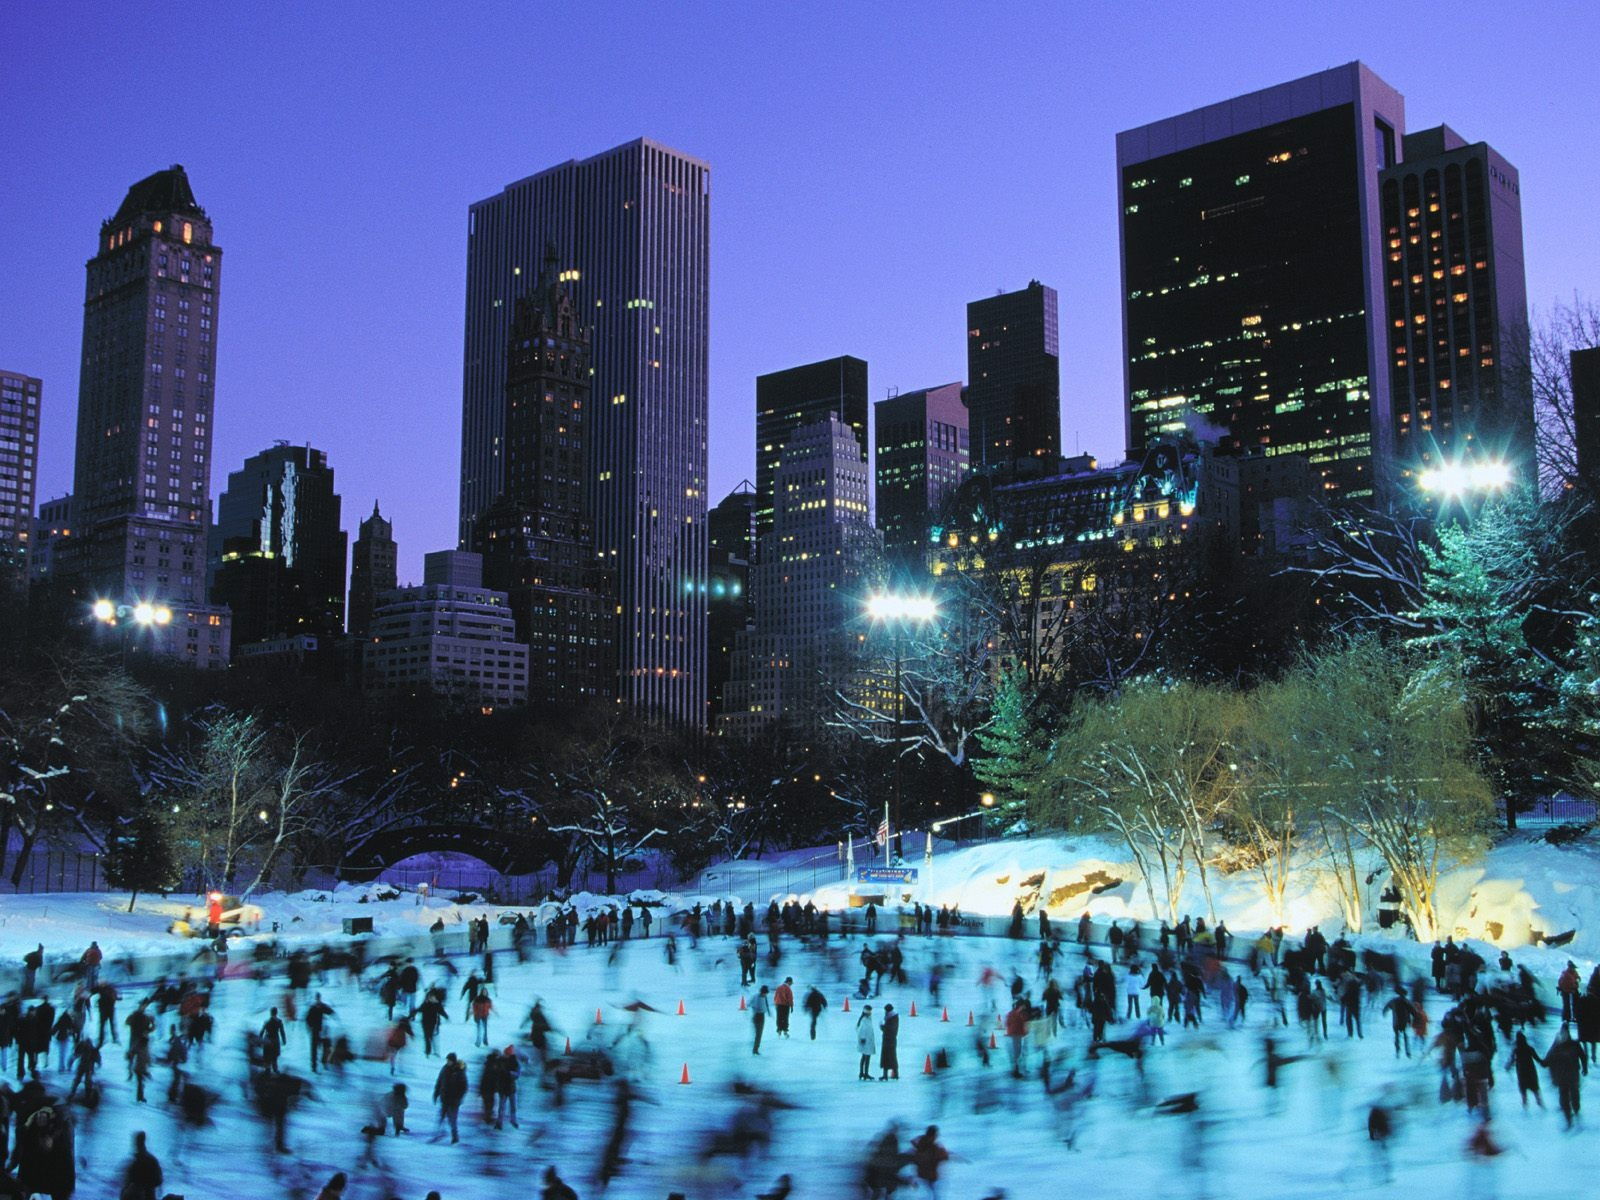 Central Park New York City Wallpapers HD Wallpapers 1600x1200